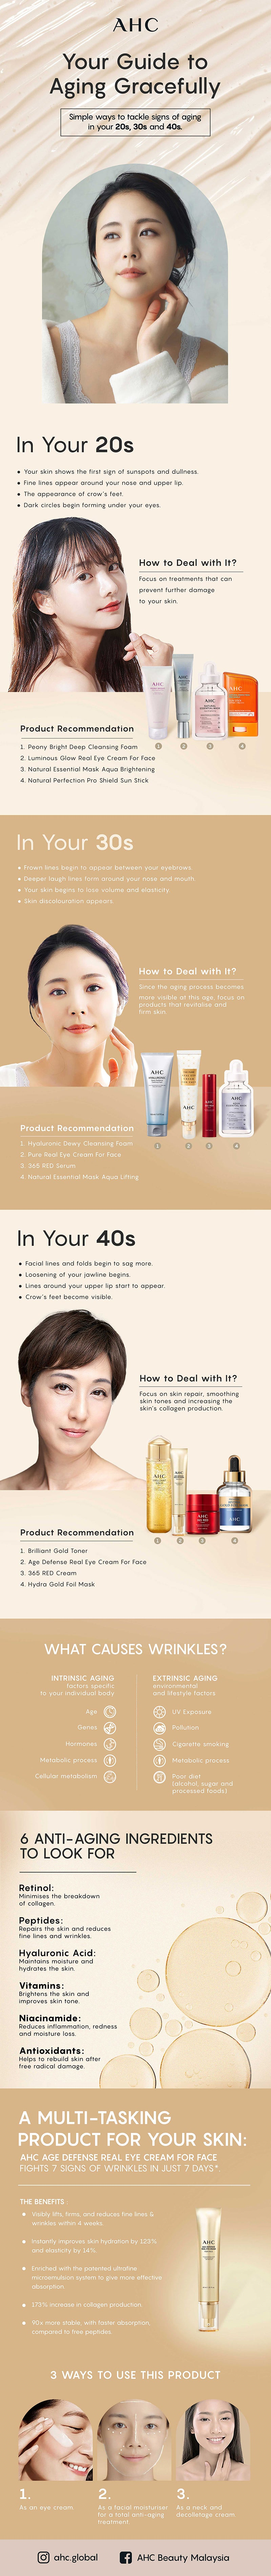 An AHC infographic to tackle sign of aging in your 20s, 30s, and 40s.